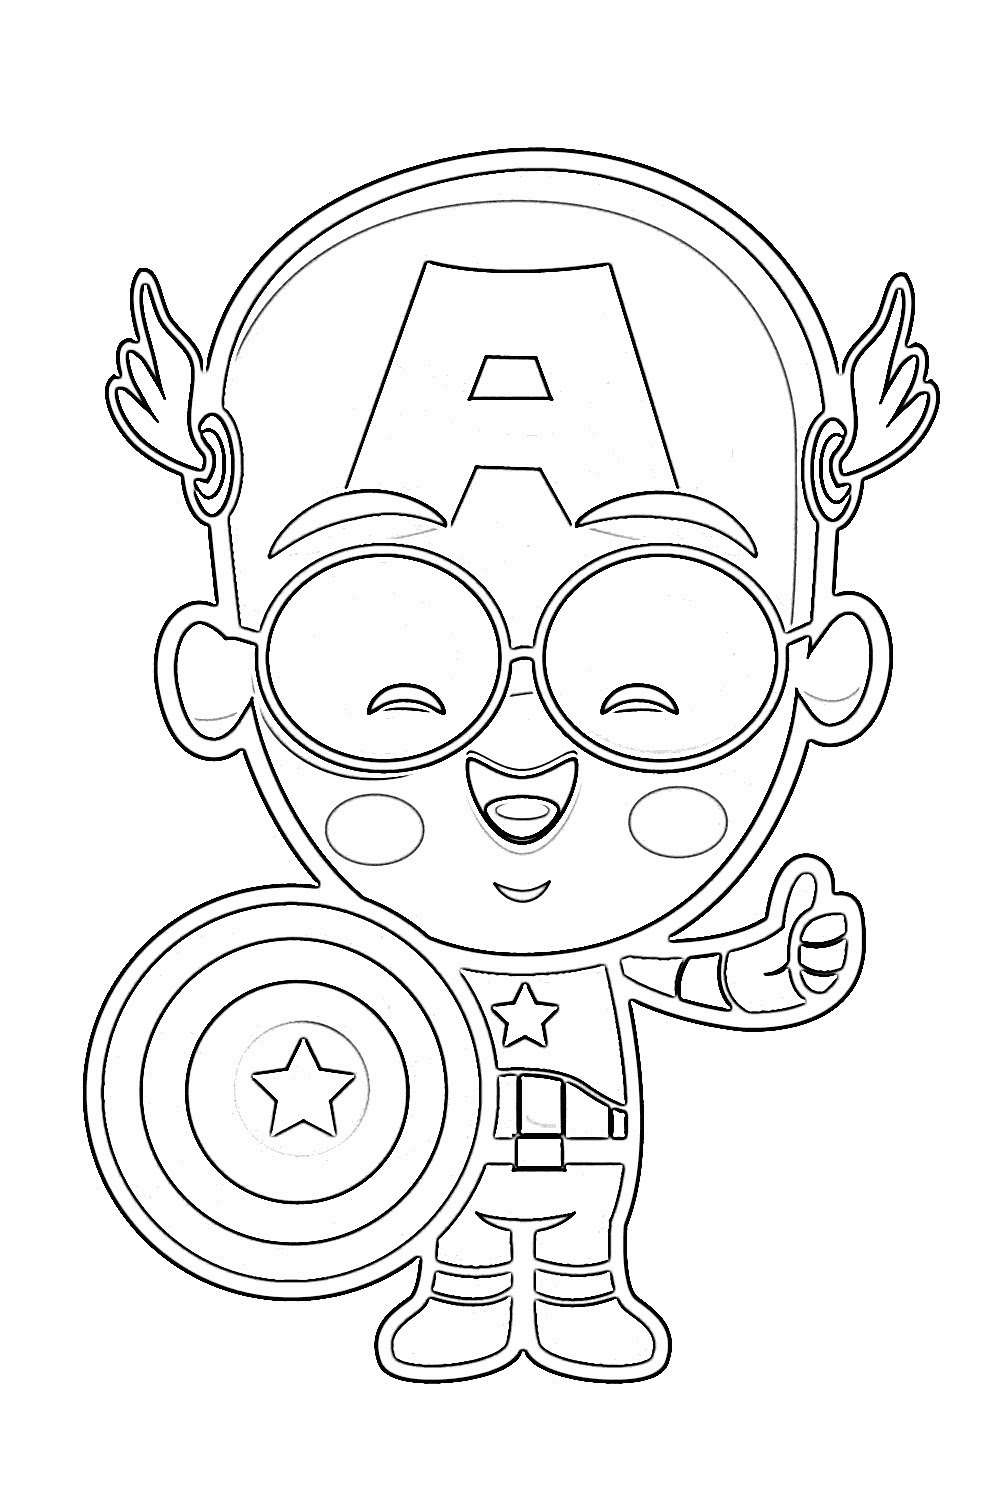 Free avengers lego coloring pages